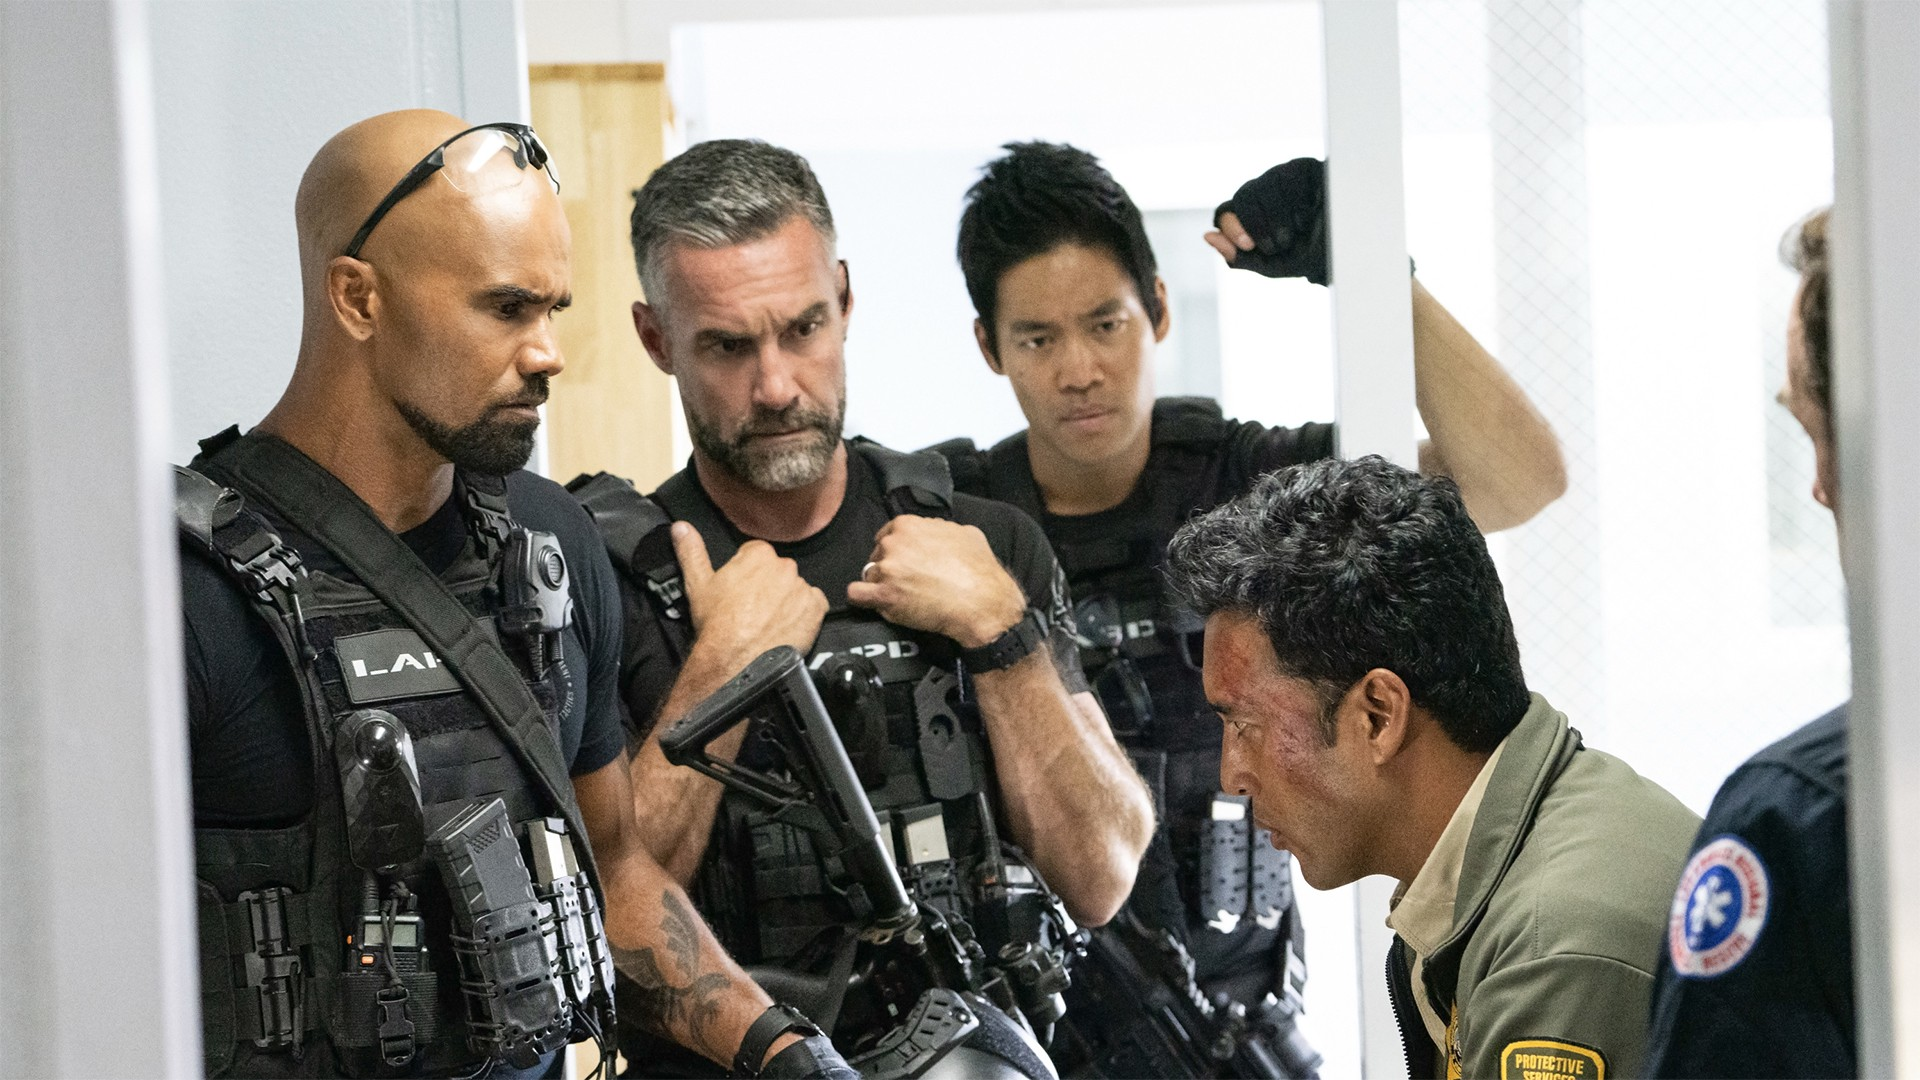 SWAT Season 3 Episode 19